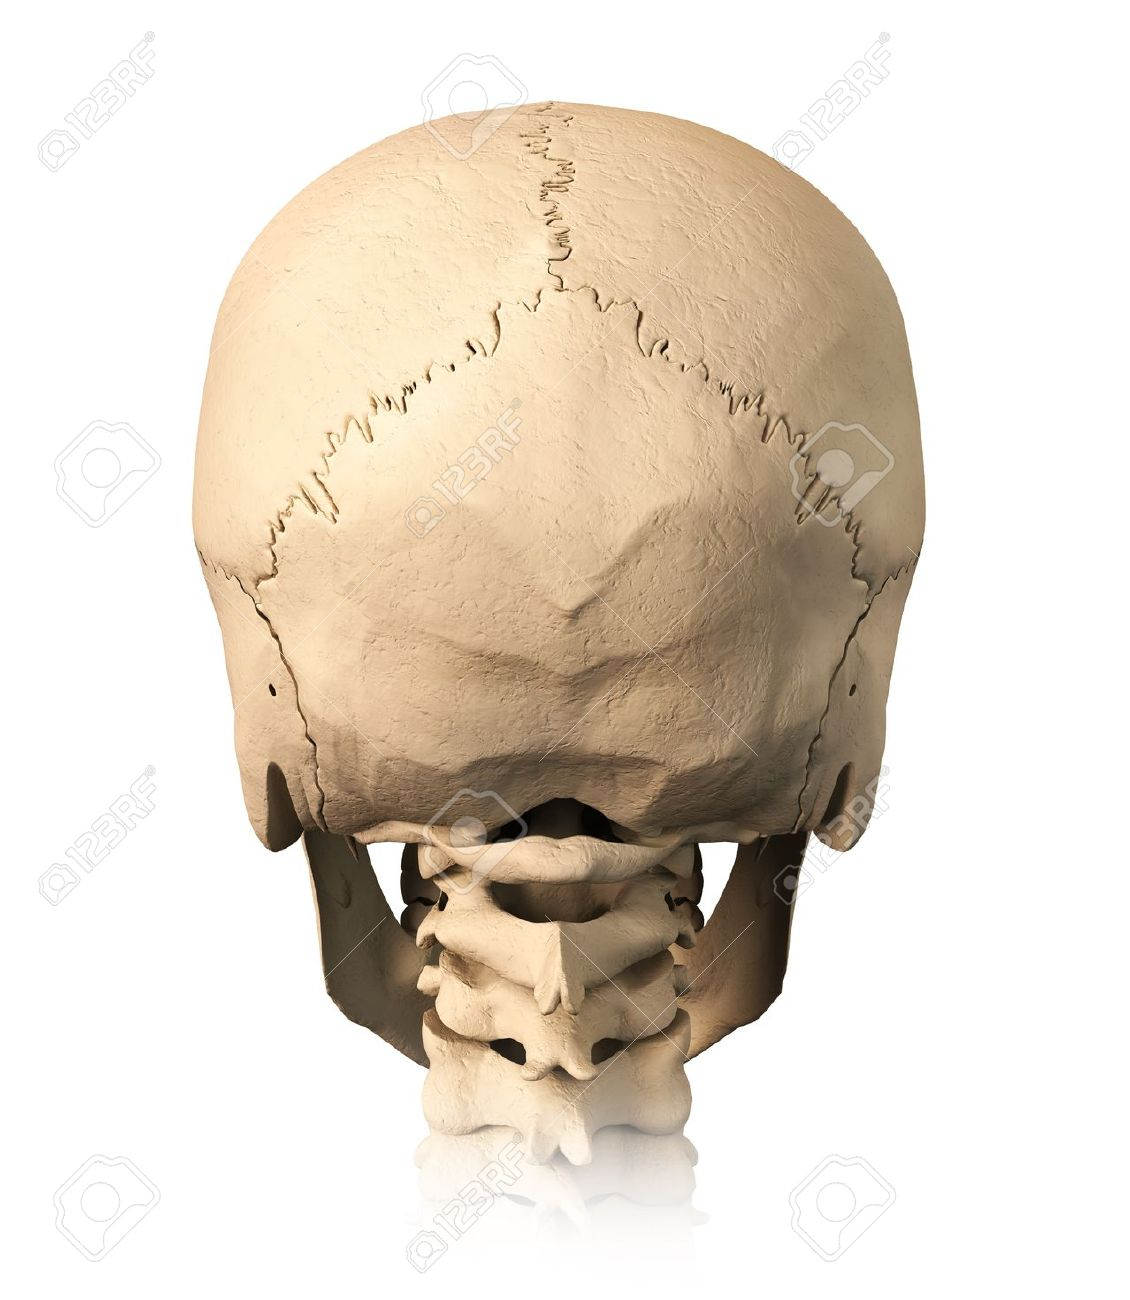 Very Detailed And Scientifically Correct Human Skull Back View